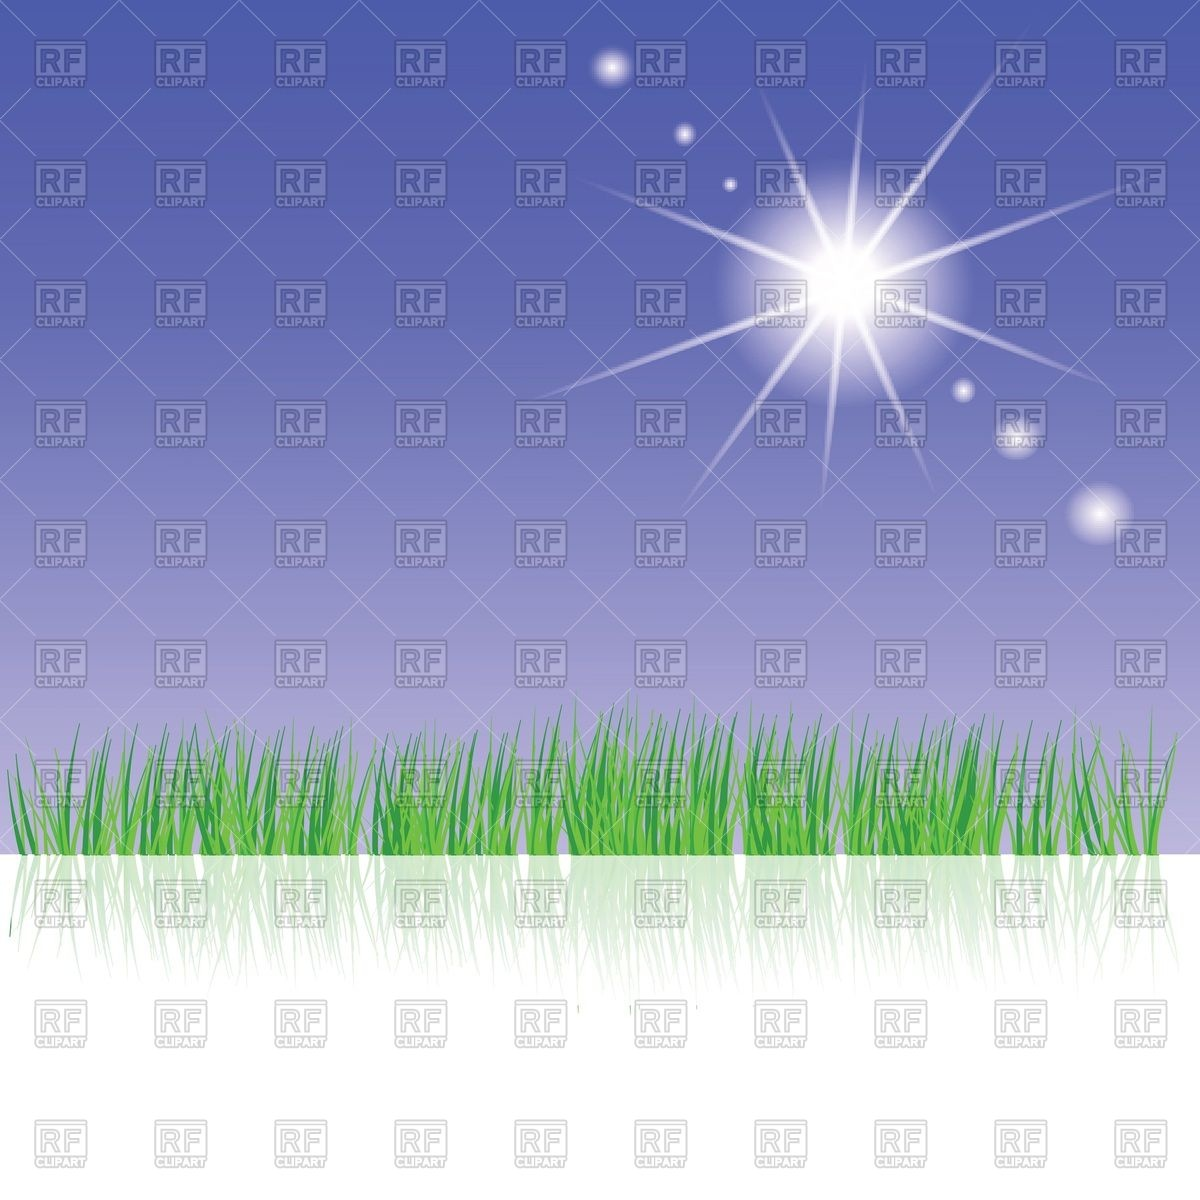 Green grass and patch of light Vector Image #39405.